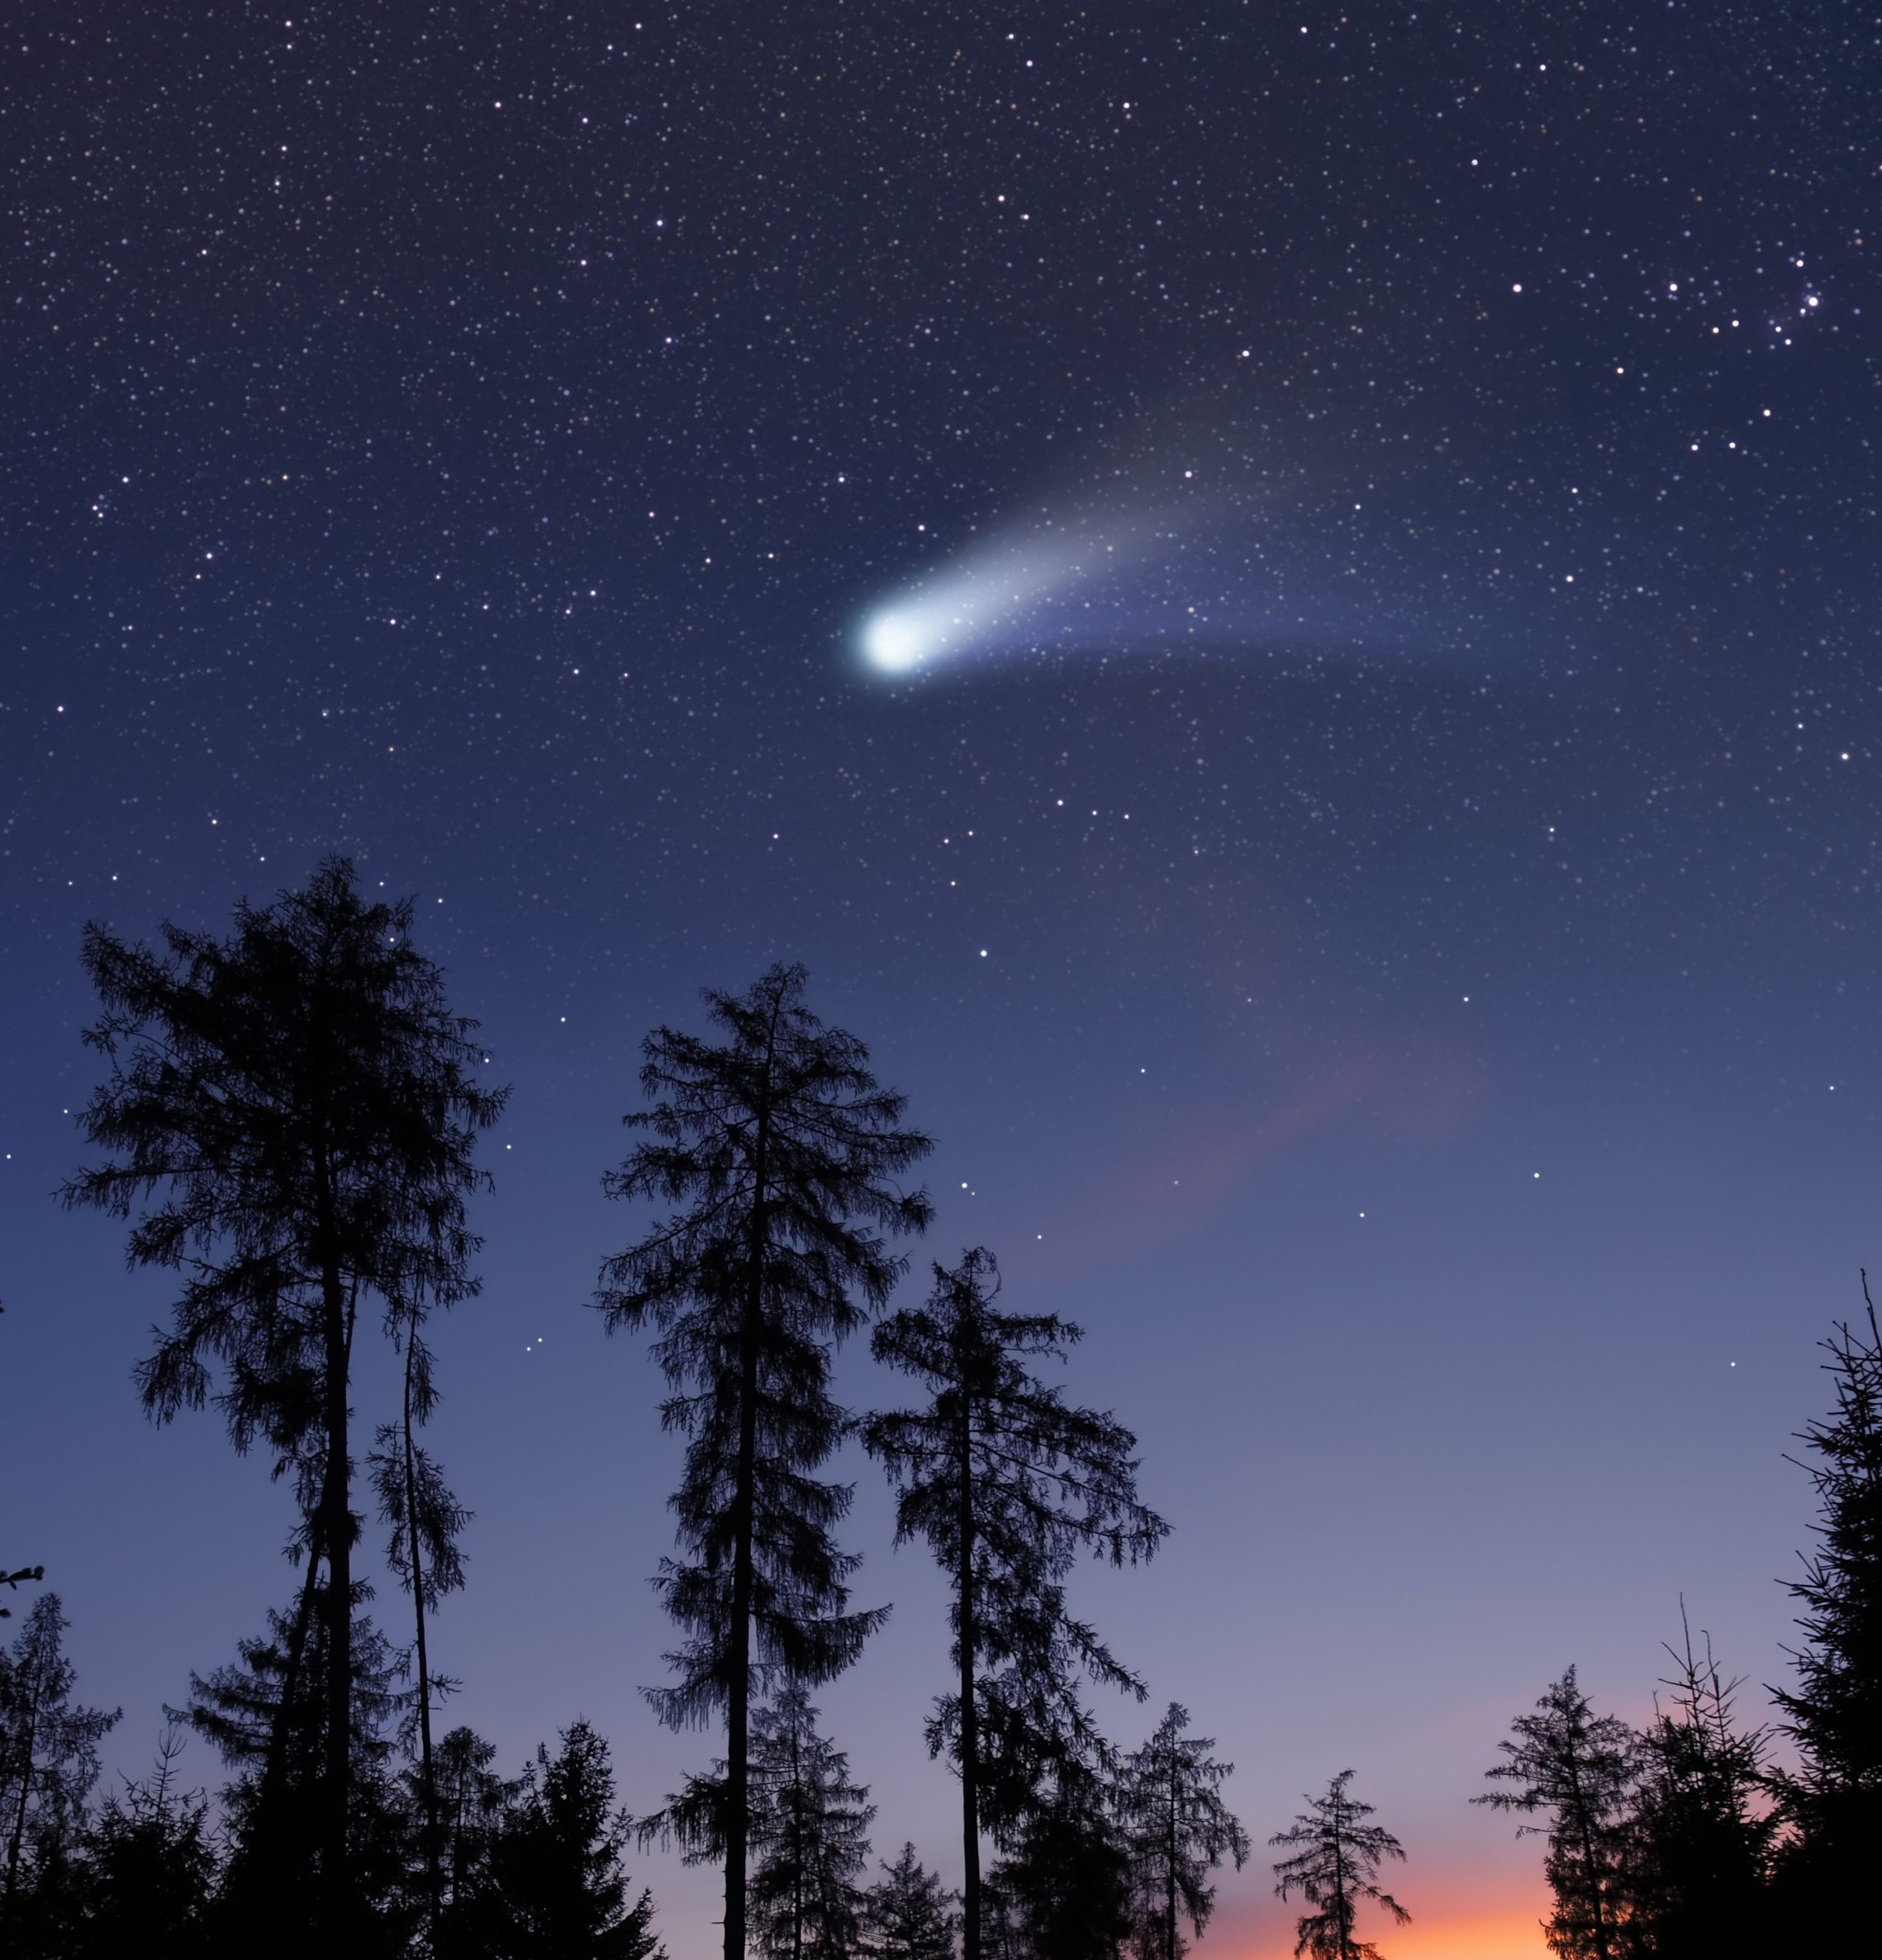 Geminid Meteor Shower: 'Once In A Lifetime Opportunity'